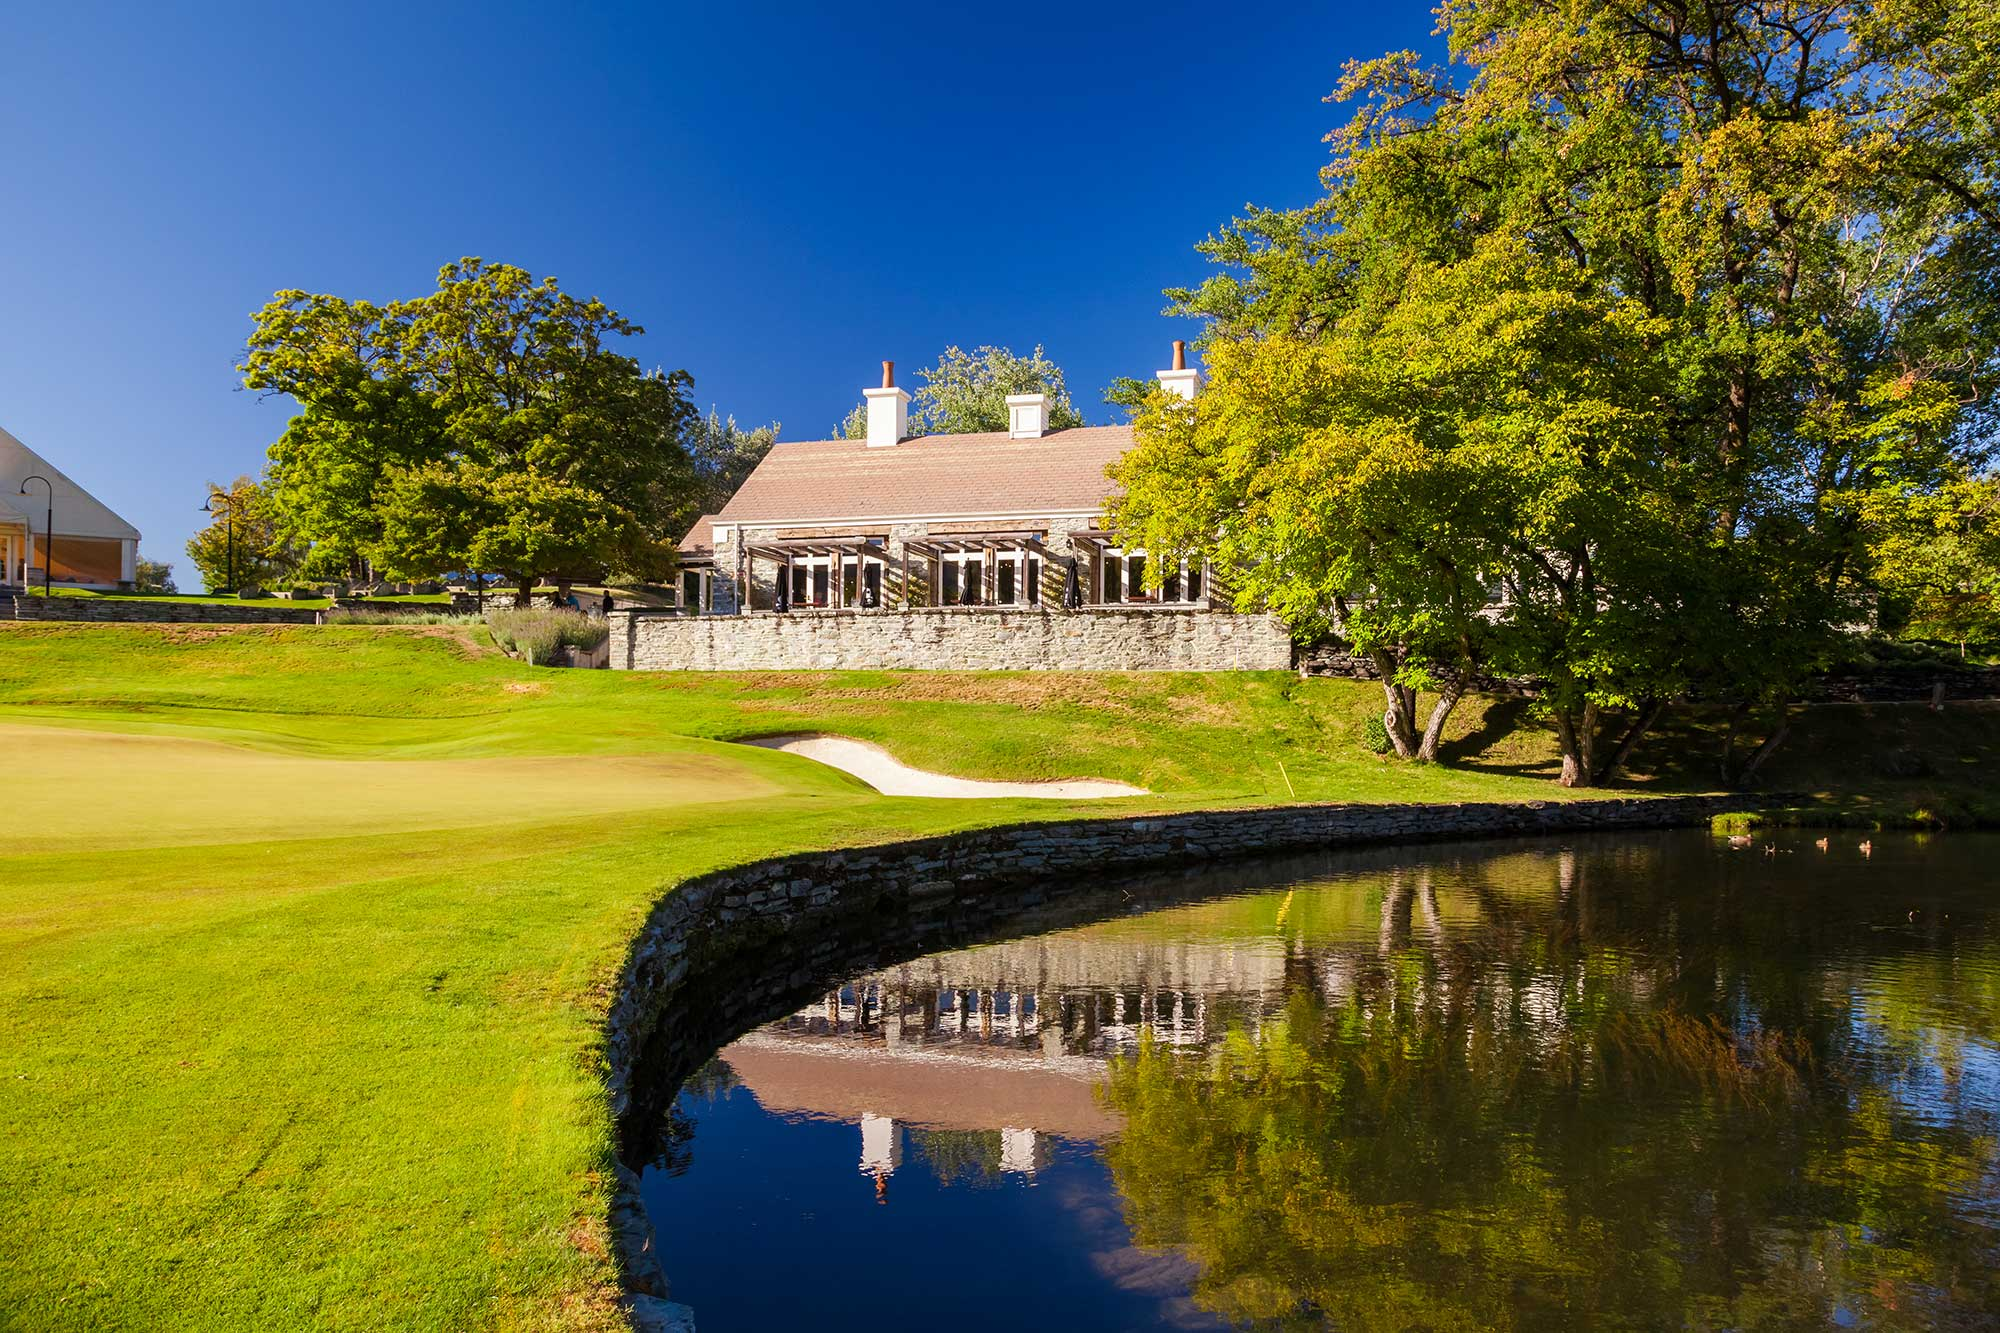 MILLBROOK RESORT 6 NIGHTS  6 night  accommodation  package at Millbrook Resort From $1,395.00 NZD  per person.